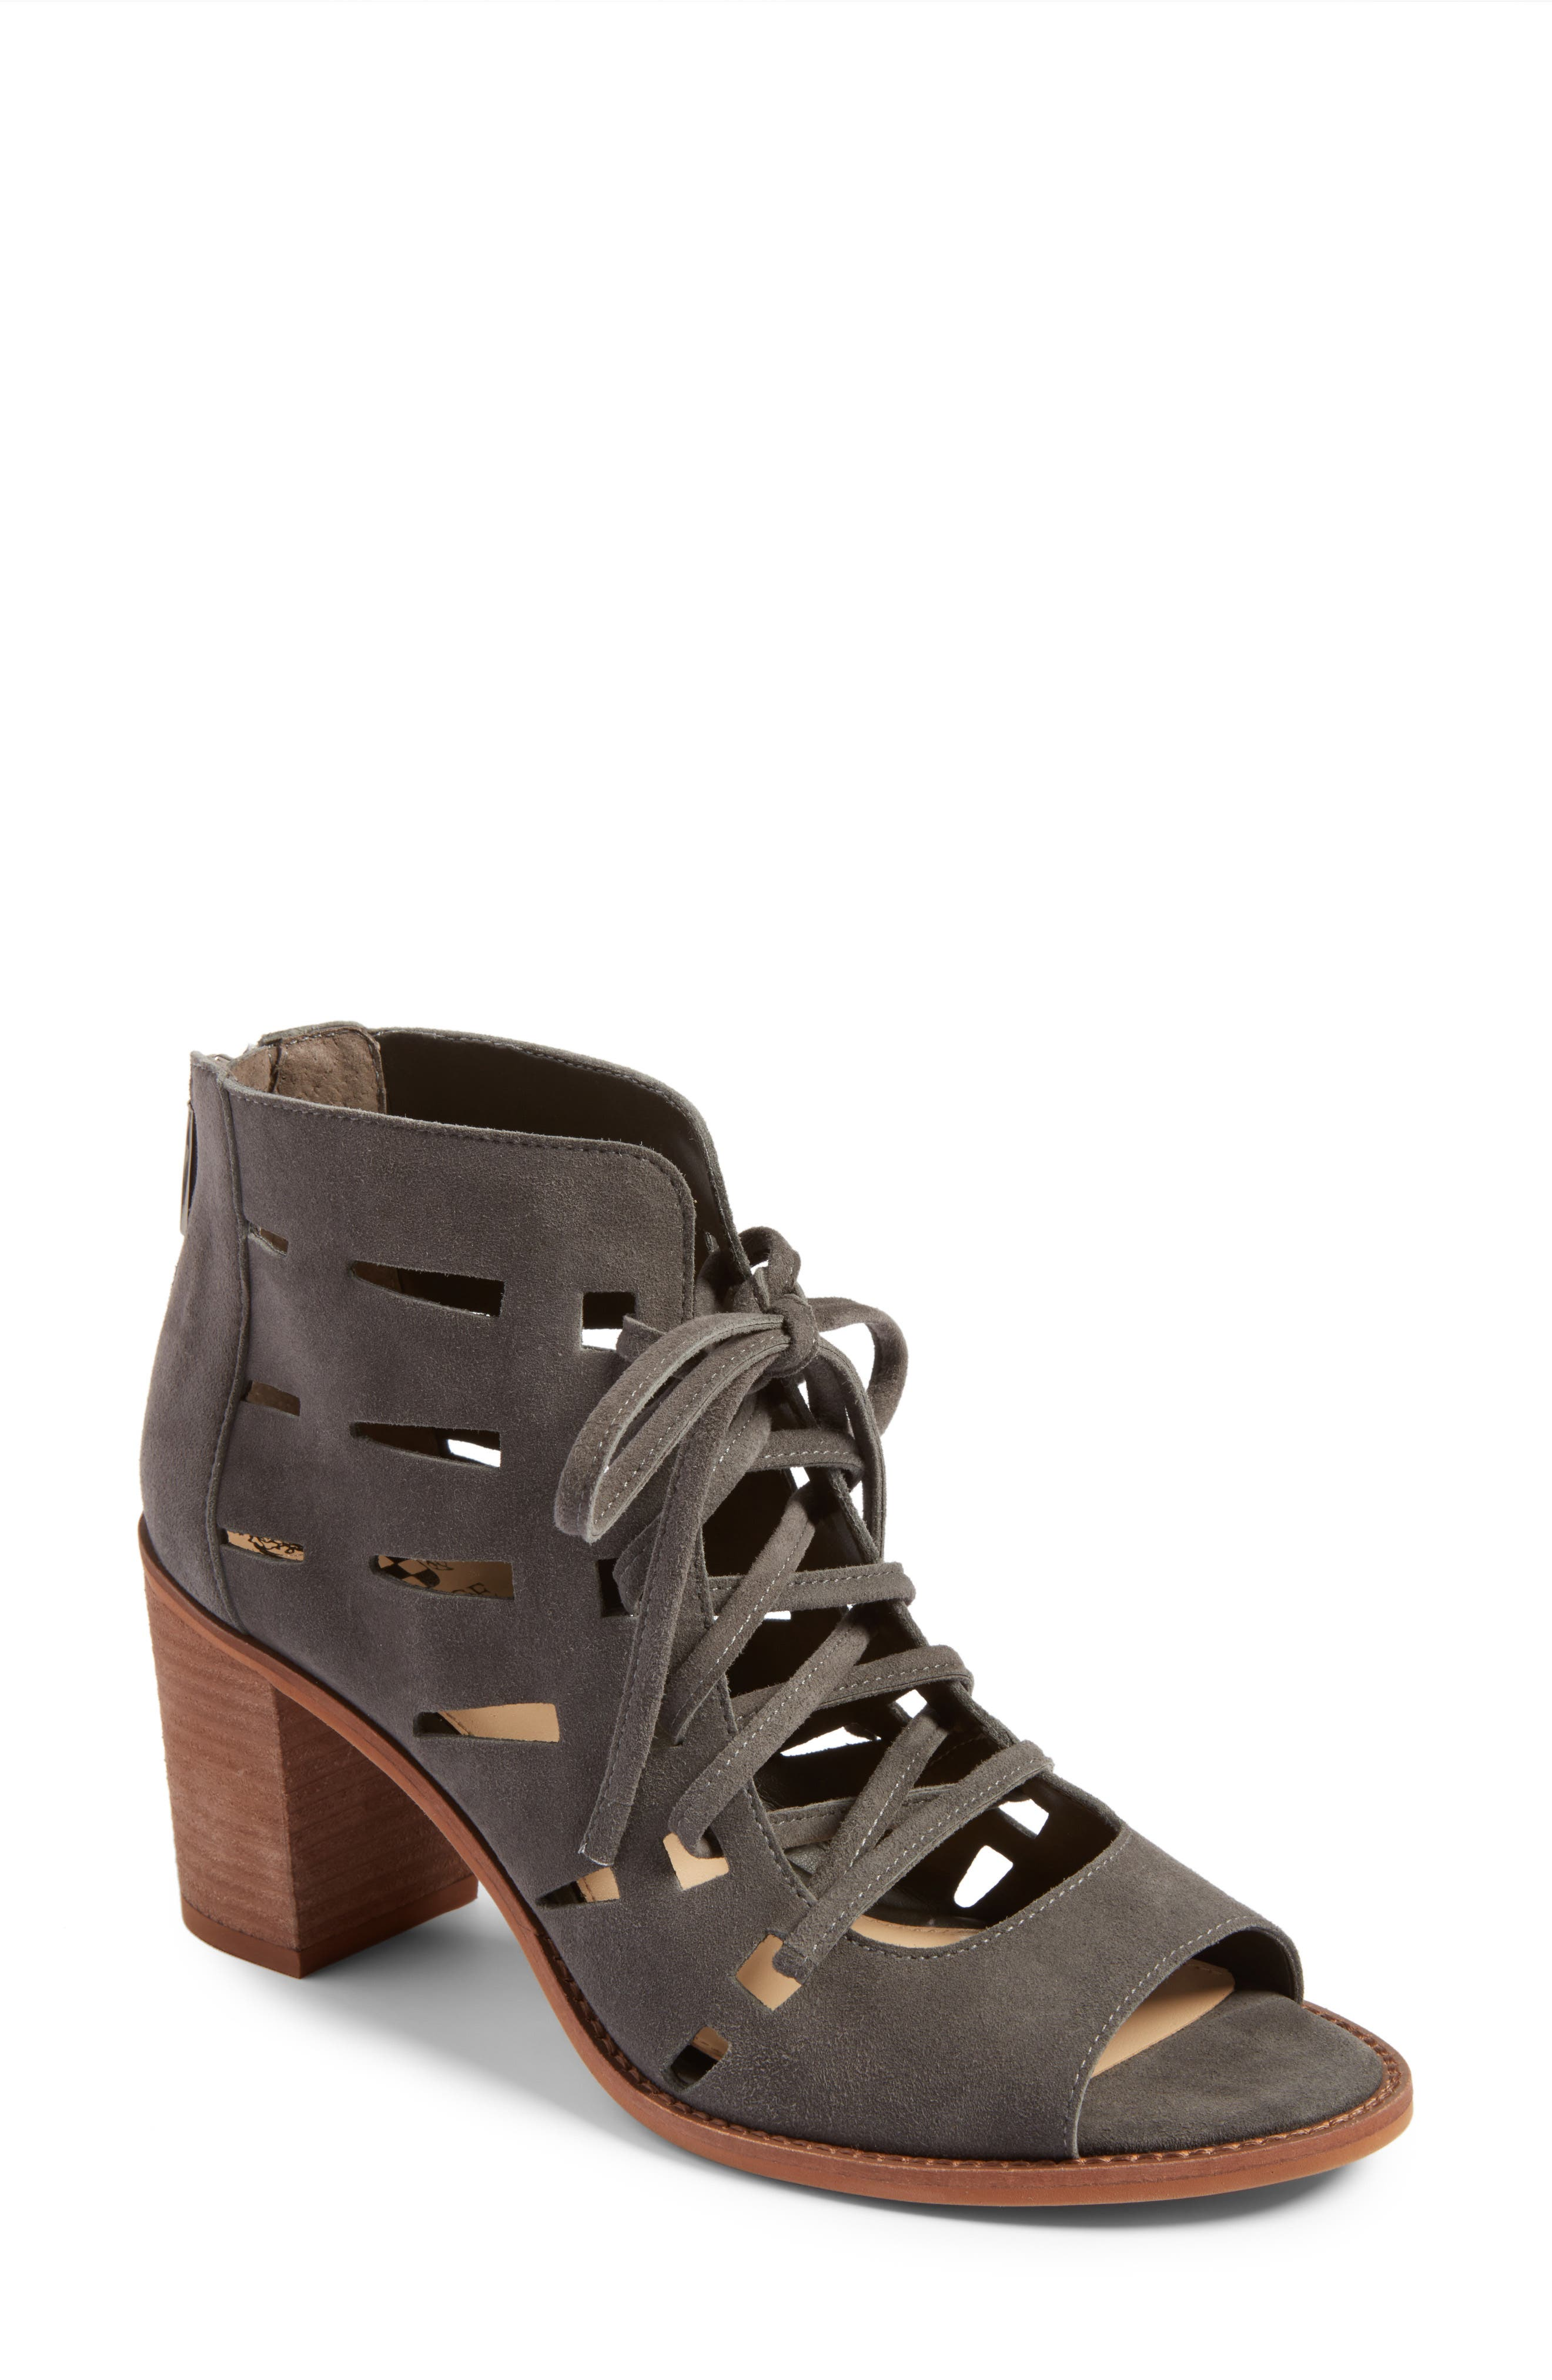 Alternate Image 1 Selected - Vince Camuto Tressa Perforated Lace-Up Sandal (Women)